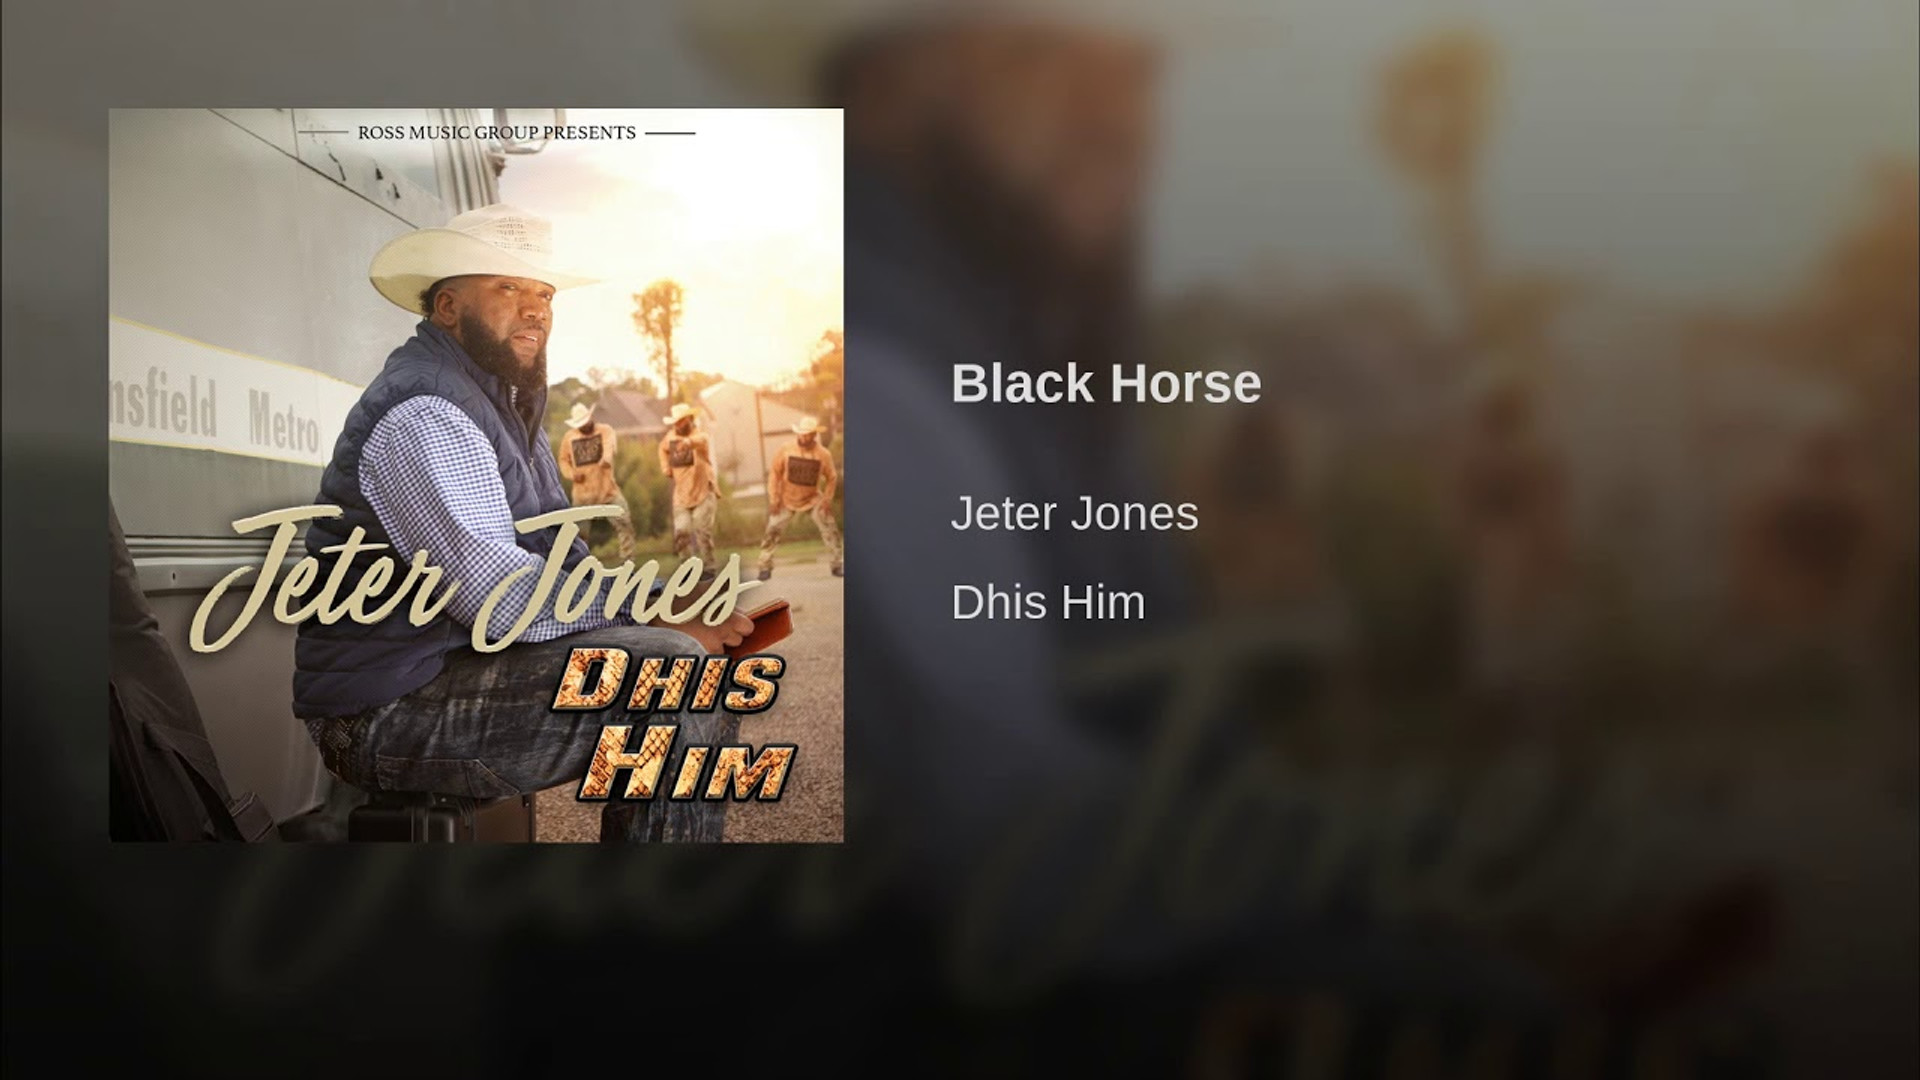 Jeter Jones - Black Horse (2018)